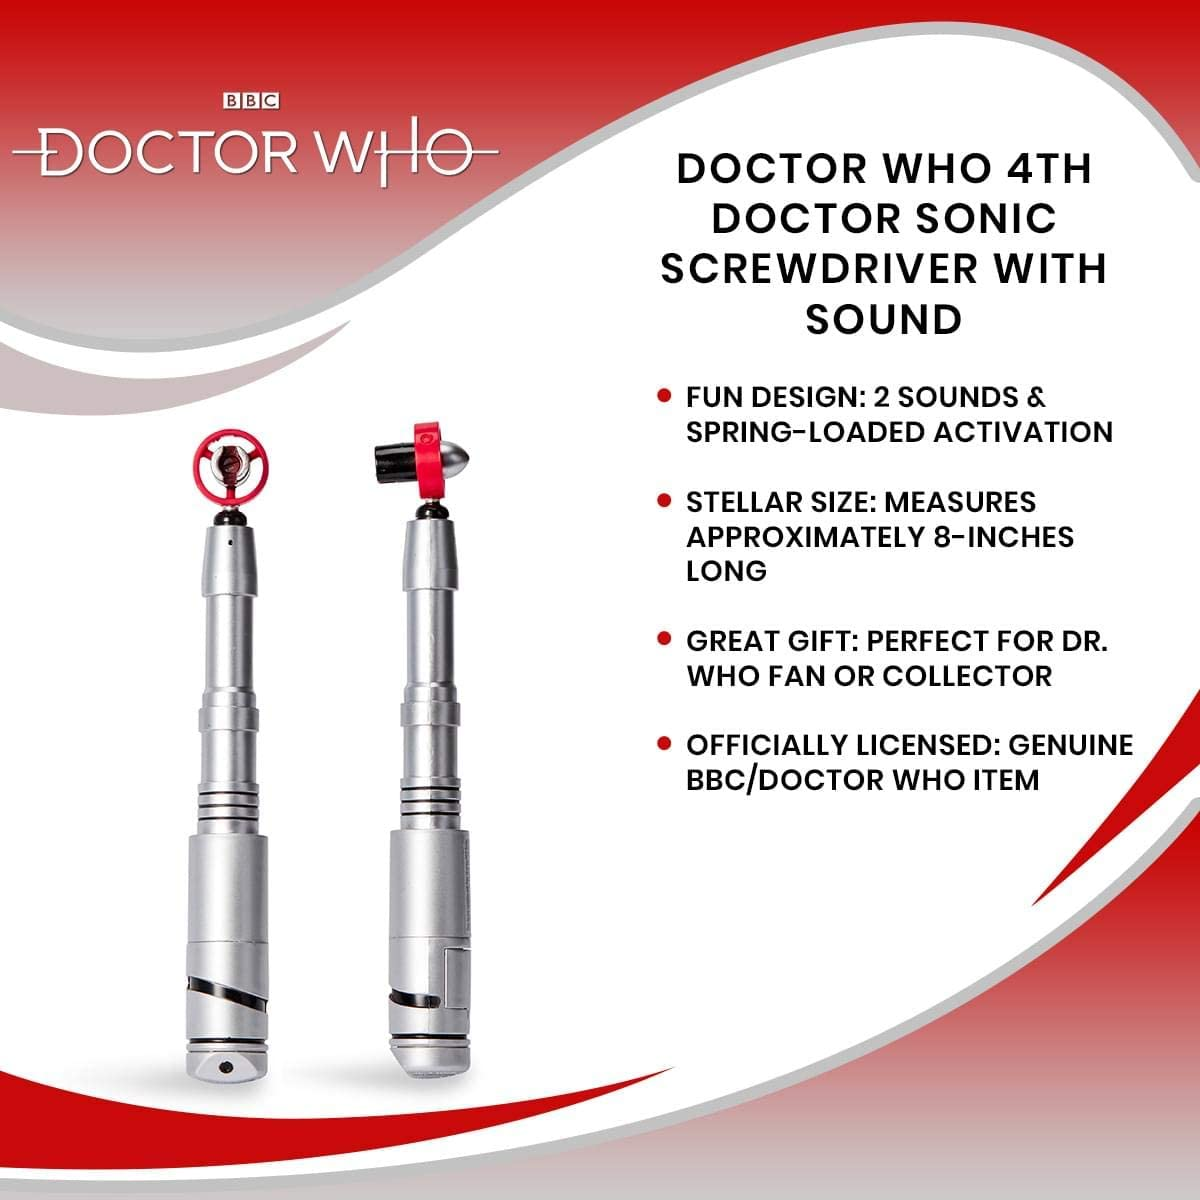 Fourth Doctors Replica Gadget with Dr Who Sound Effects Doctor Who Sonic Screwdriver